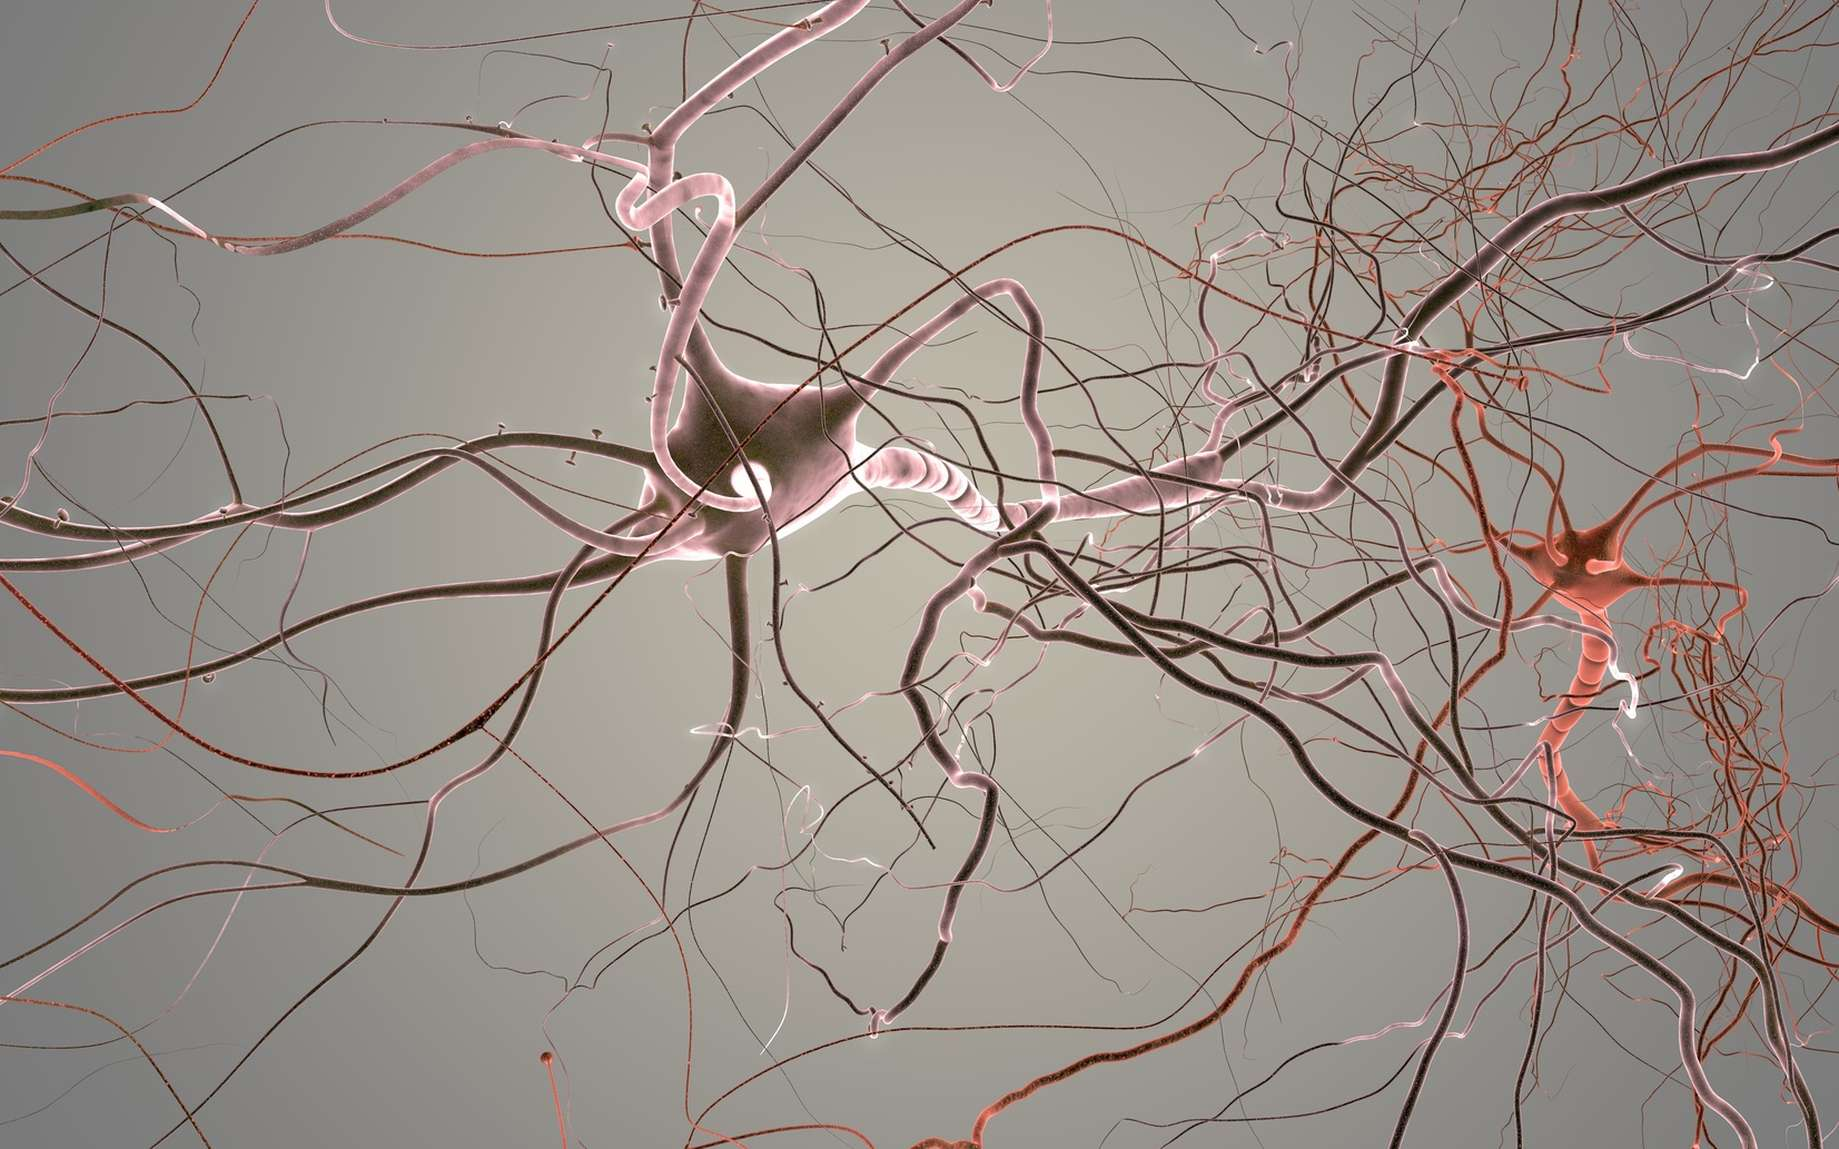 Le neurone bipolaire a un prolongement afférent (dendrite) et un prolongement efférent (axone). © whitehoune, Fotolia